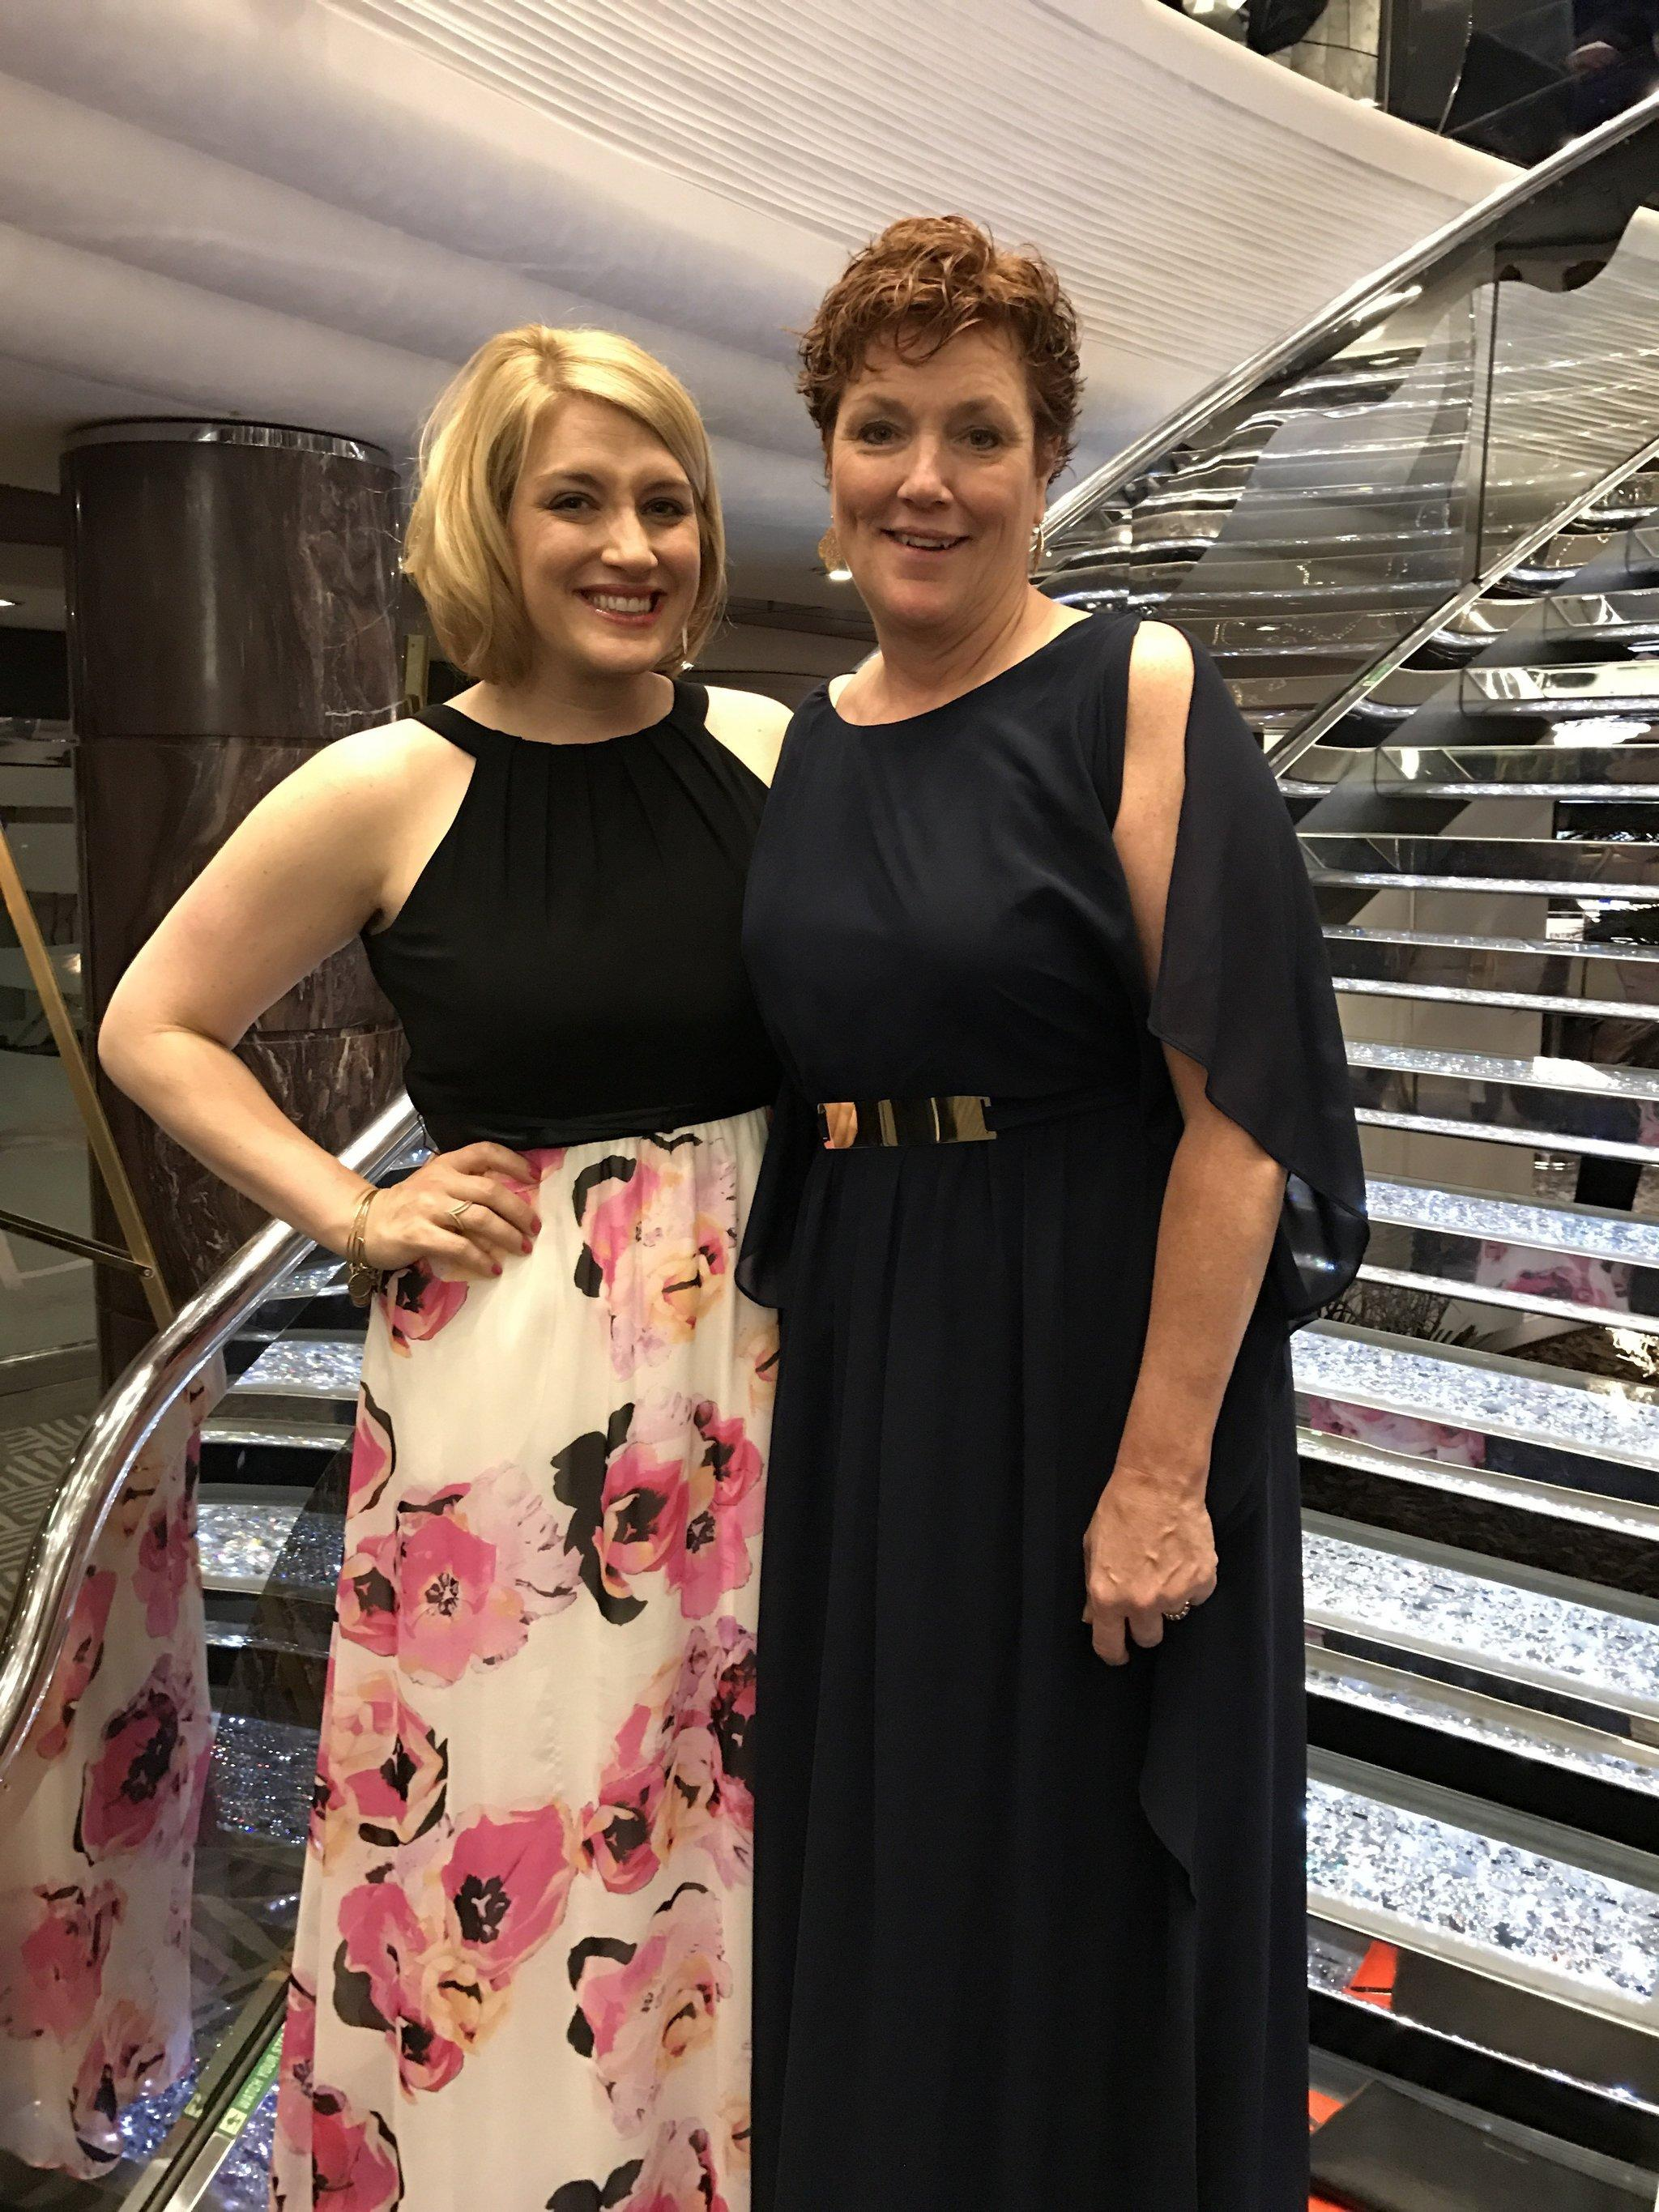 This Mother-Daughter Team Collectively Lost Over 100 Pounds ...